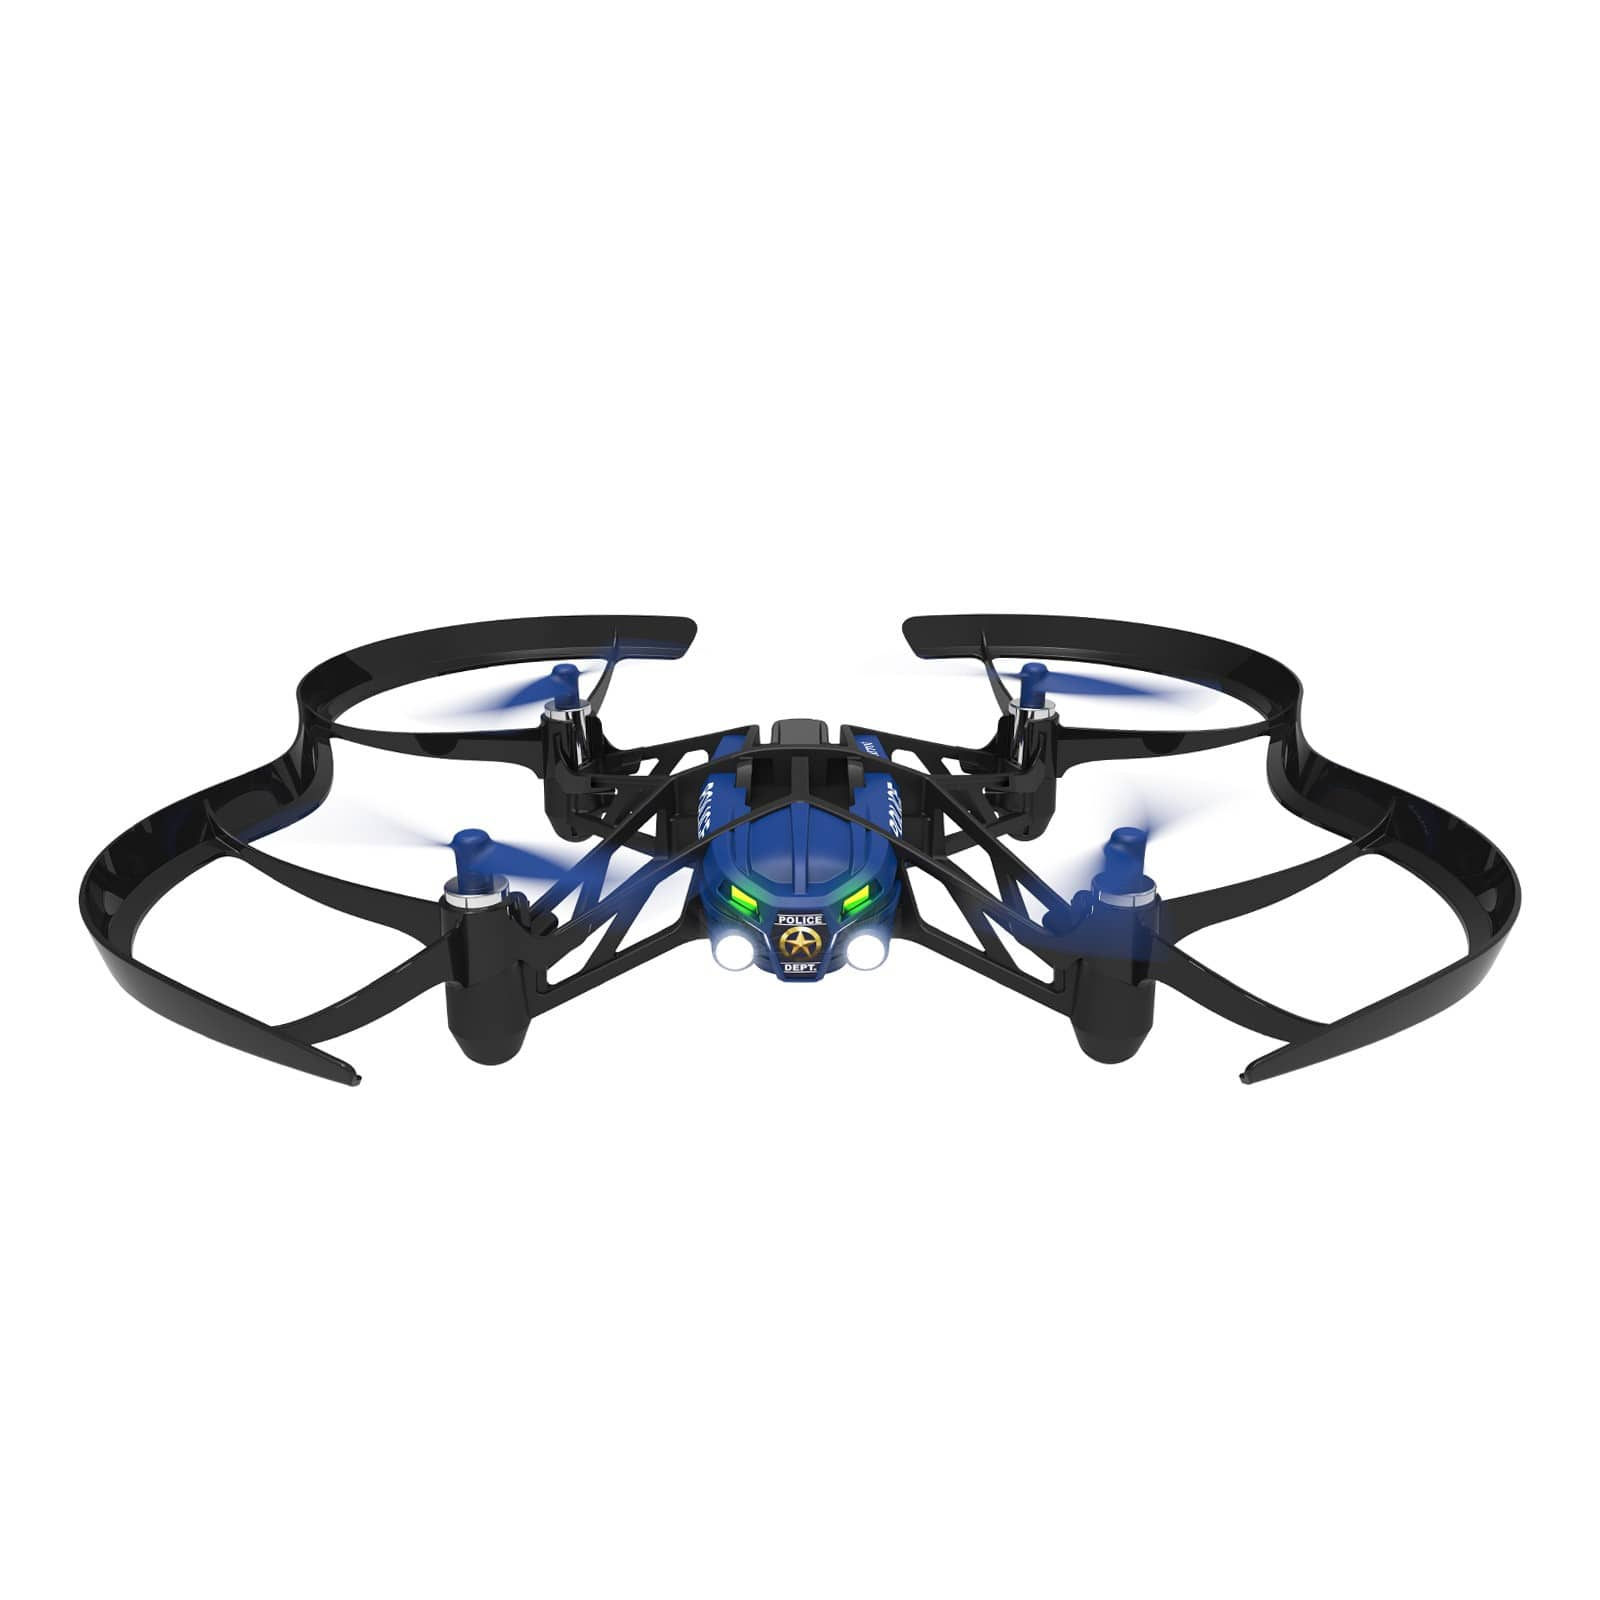 Parrot Mini Drones (refurb) from $24.99 + Flypad Promo $9.99 w/purchase / fs @ tr